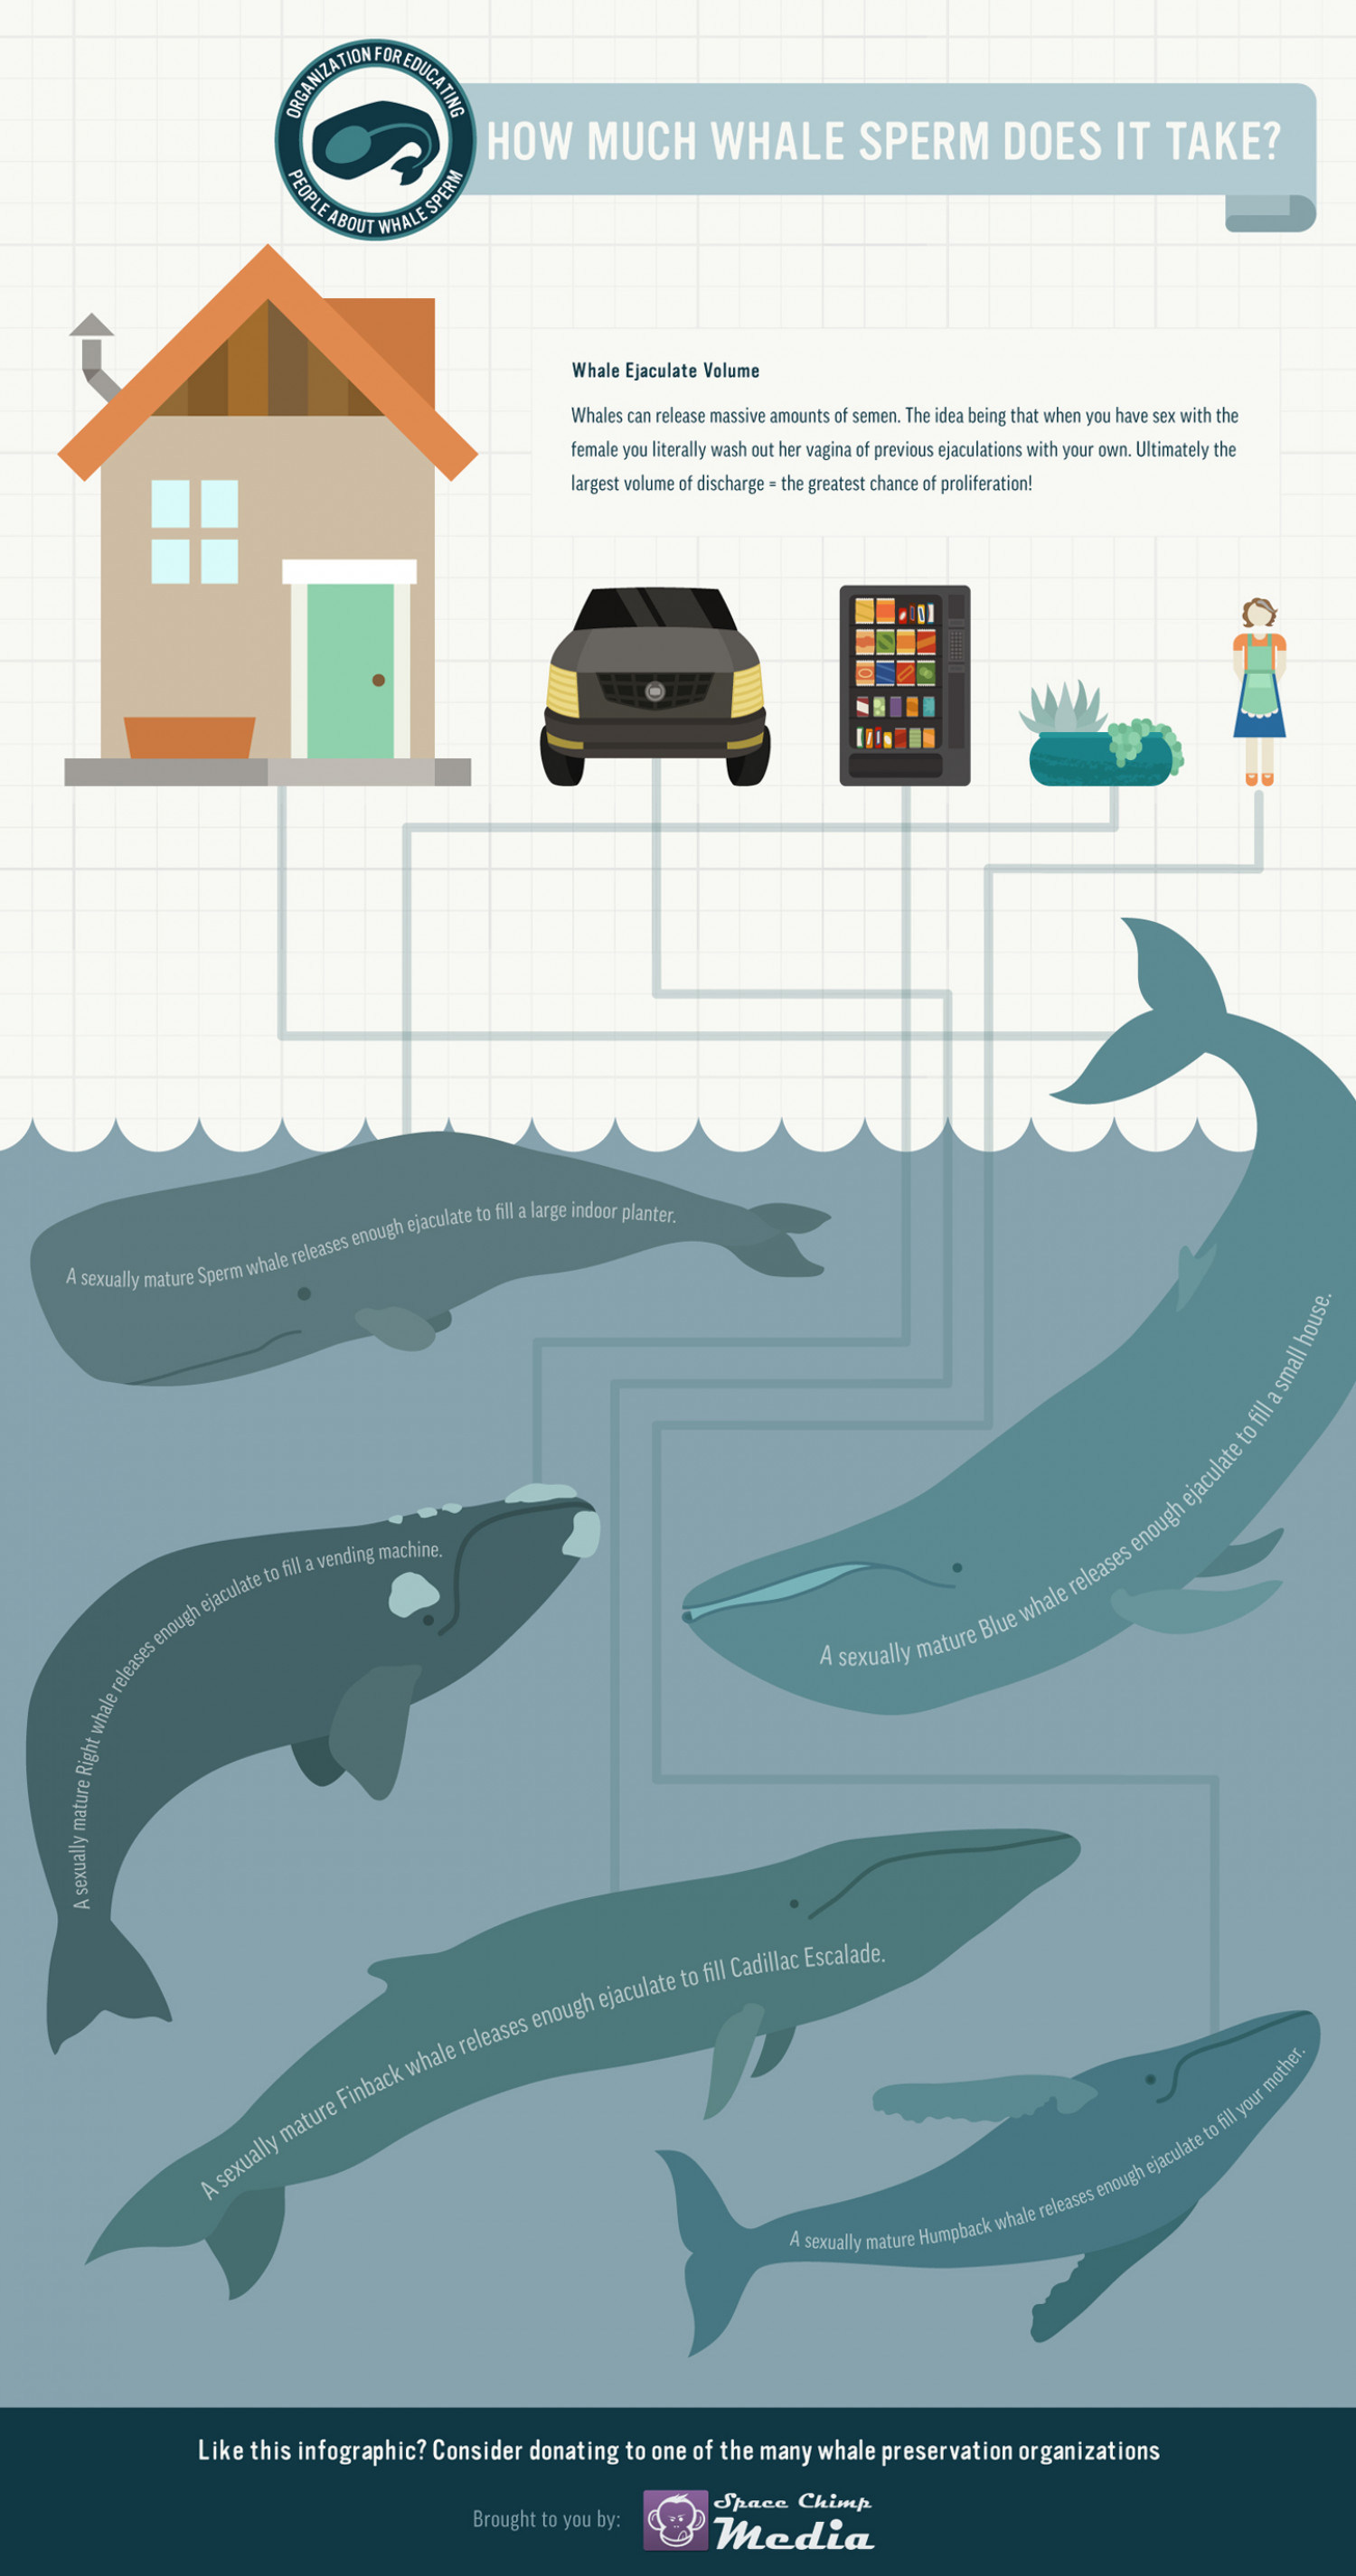 How Much Whale Sperm Does It Take? Infographic